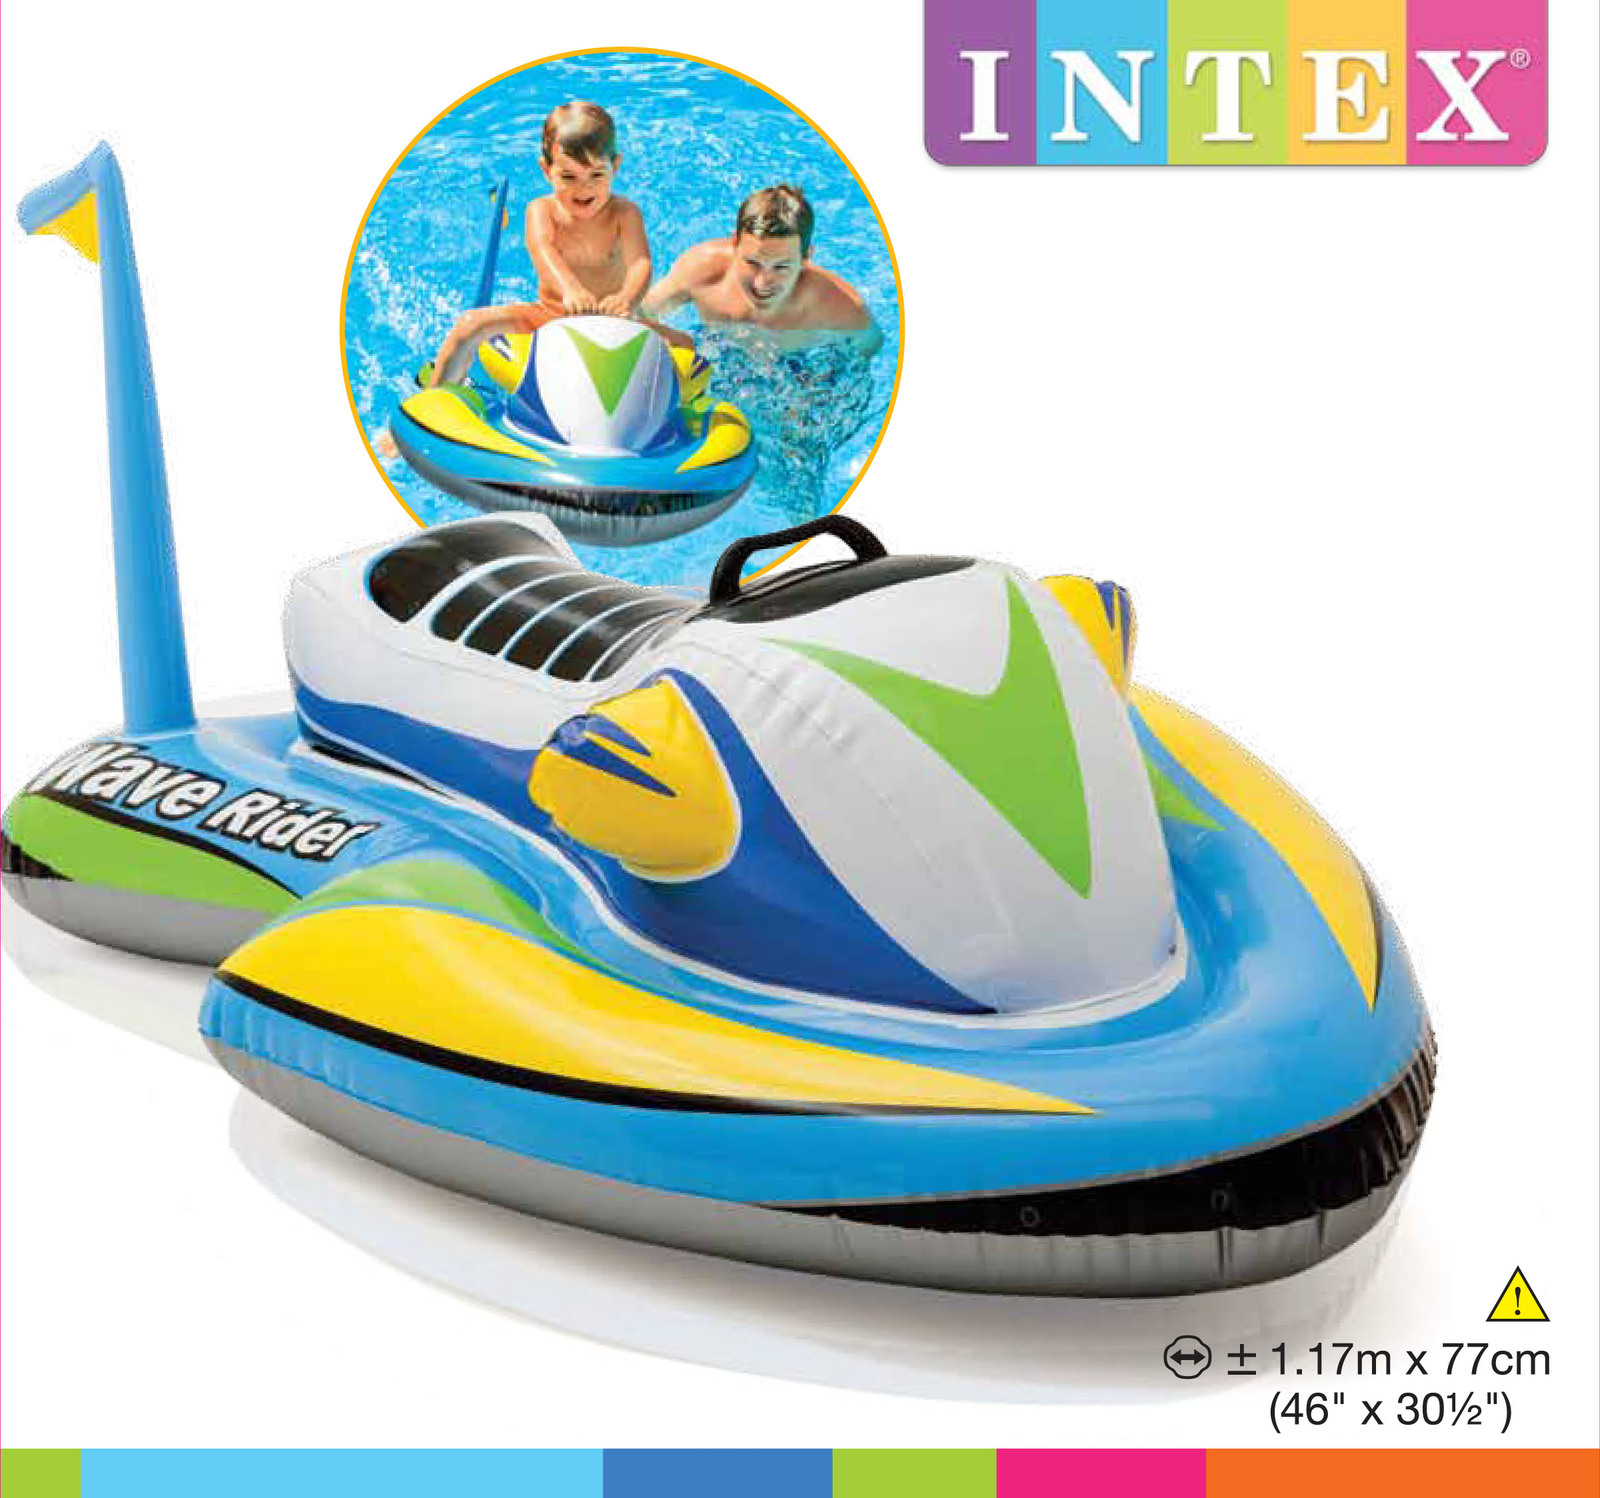 Intex: Wave Rider Ride-On image